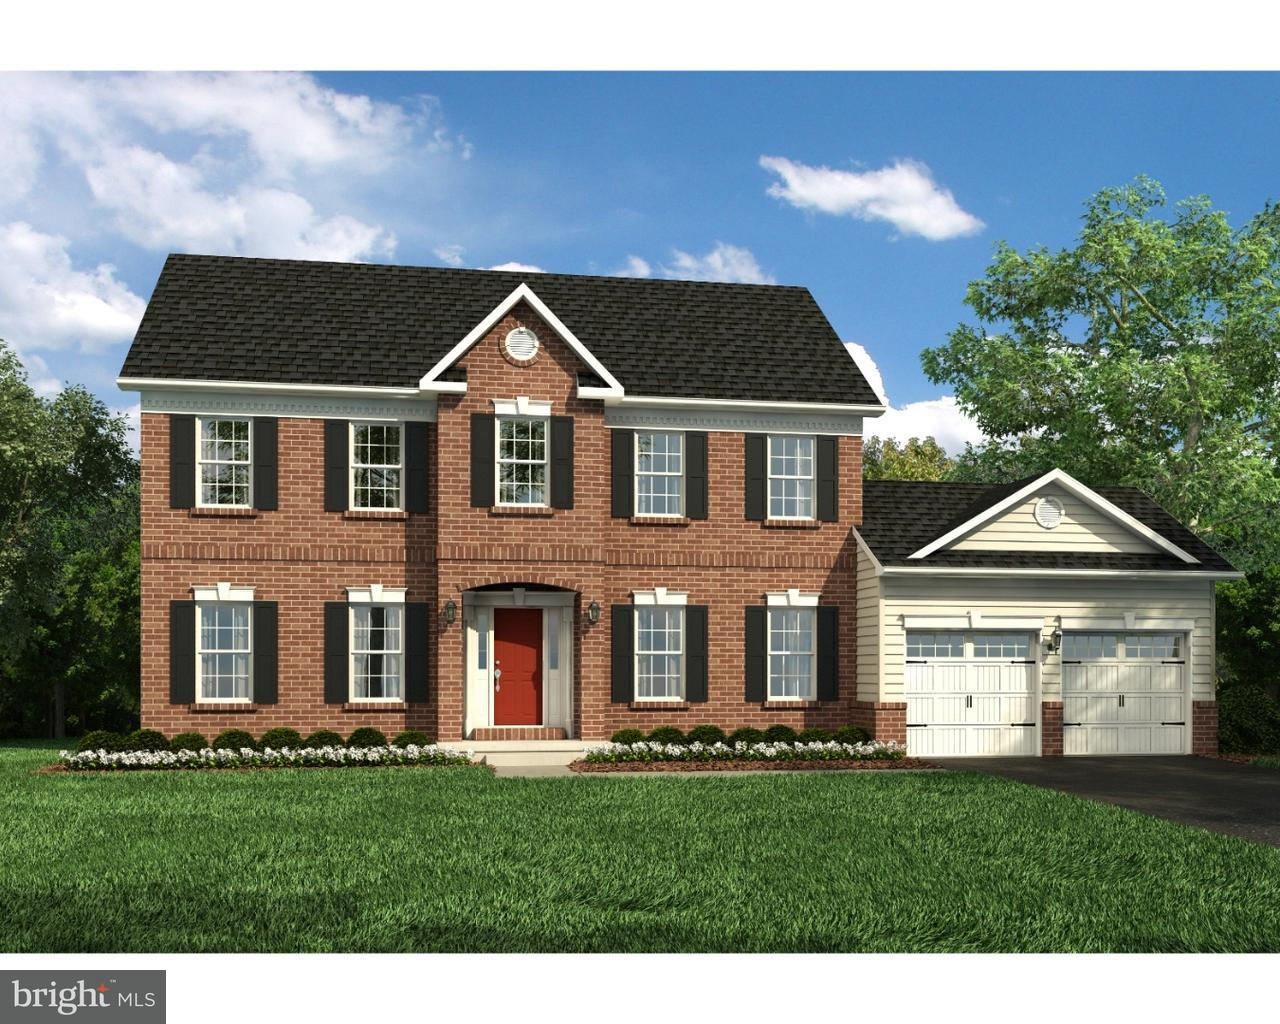 34-43 KULP RD, HARLEYSVILLE - Listed at $429,990,